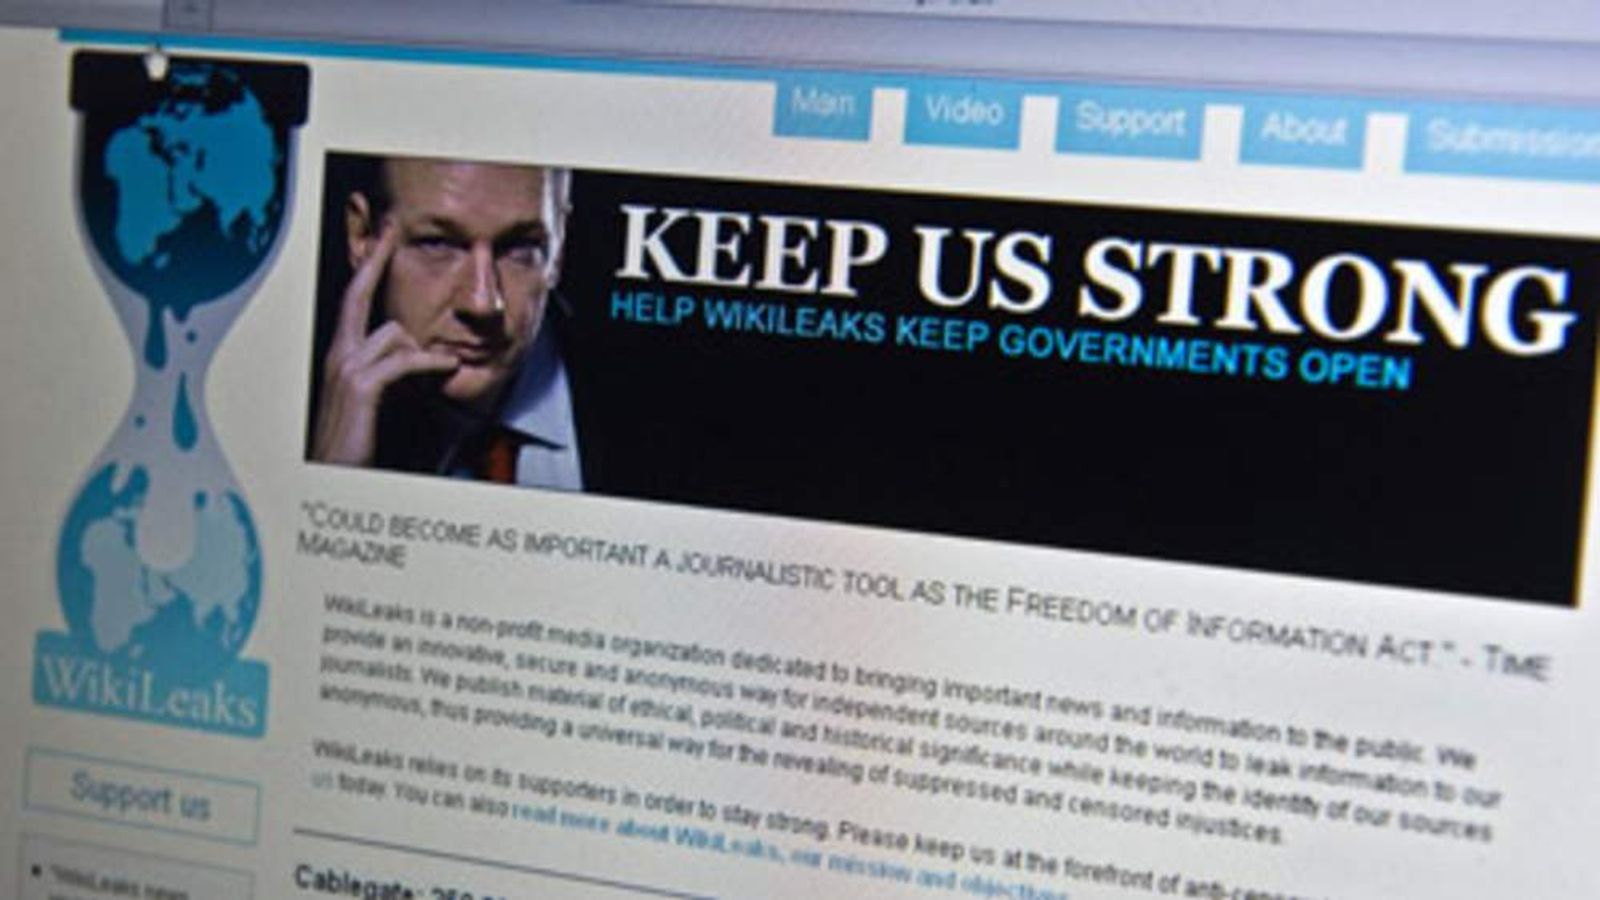 Picture of WikiLeaks founder Julian Assange on the website's homepage.